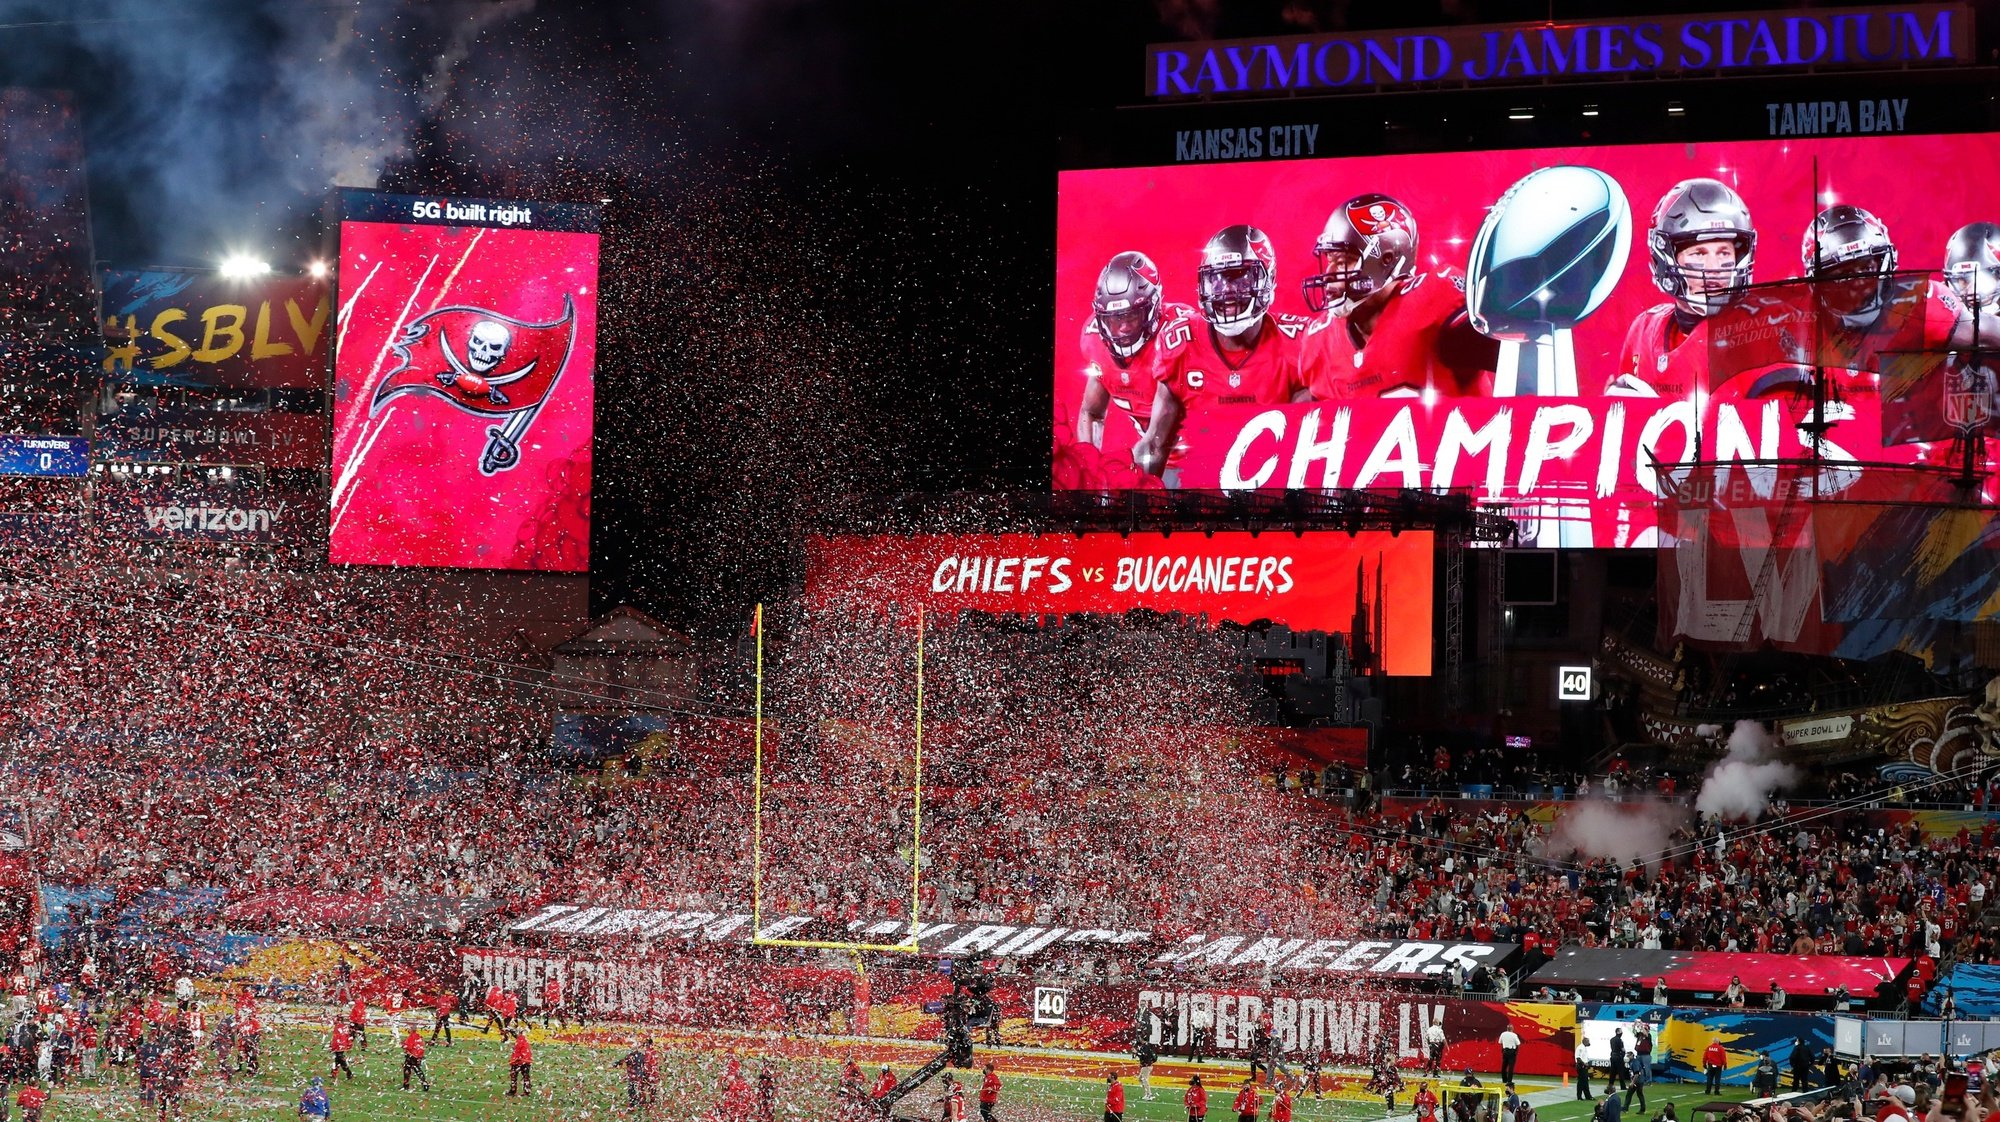 epa08995303 Tampa Bay Buccaneers on the big screen after the Tampa Bay Buccaneers defeating the Kansas City Chiefs in the National Football League Super Bowl LV at Raymond James Stadium in Tampa, Florida, USA, 07 February 2021.  EPA/GARY BOGDON